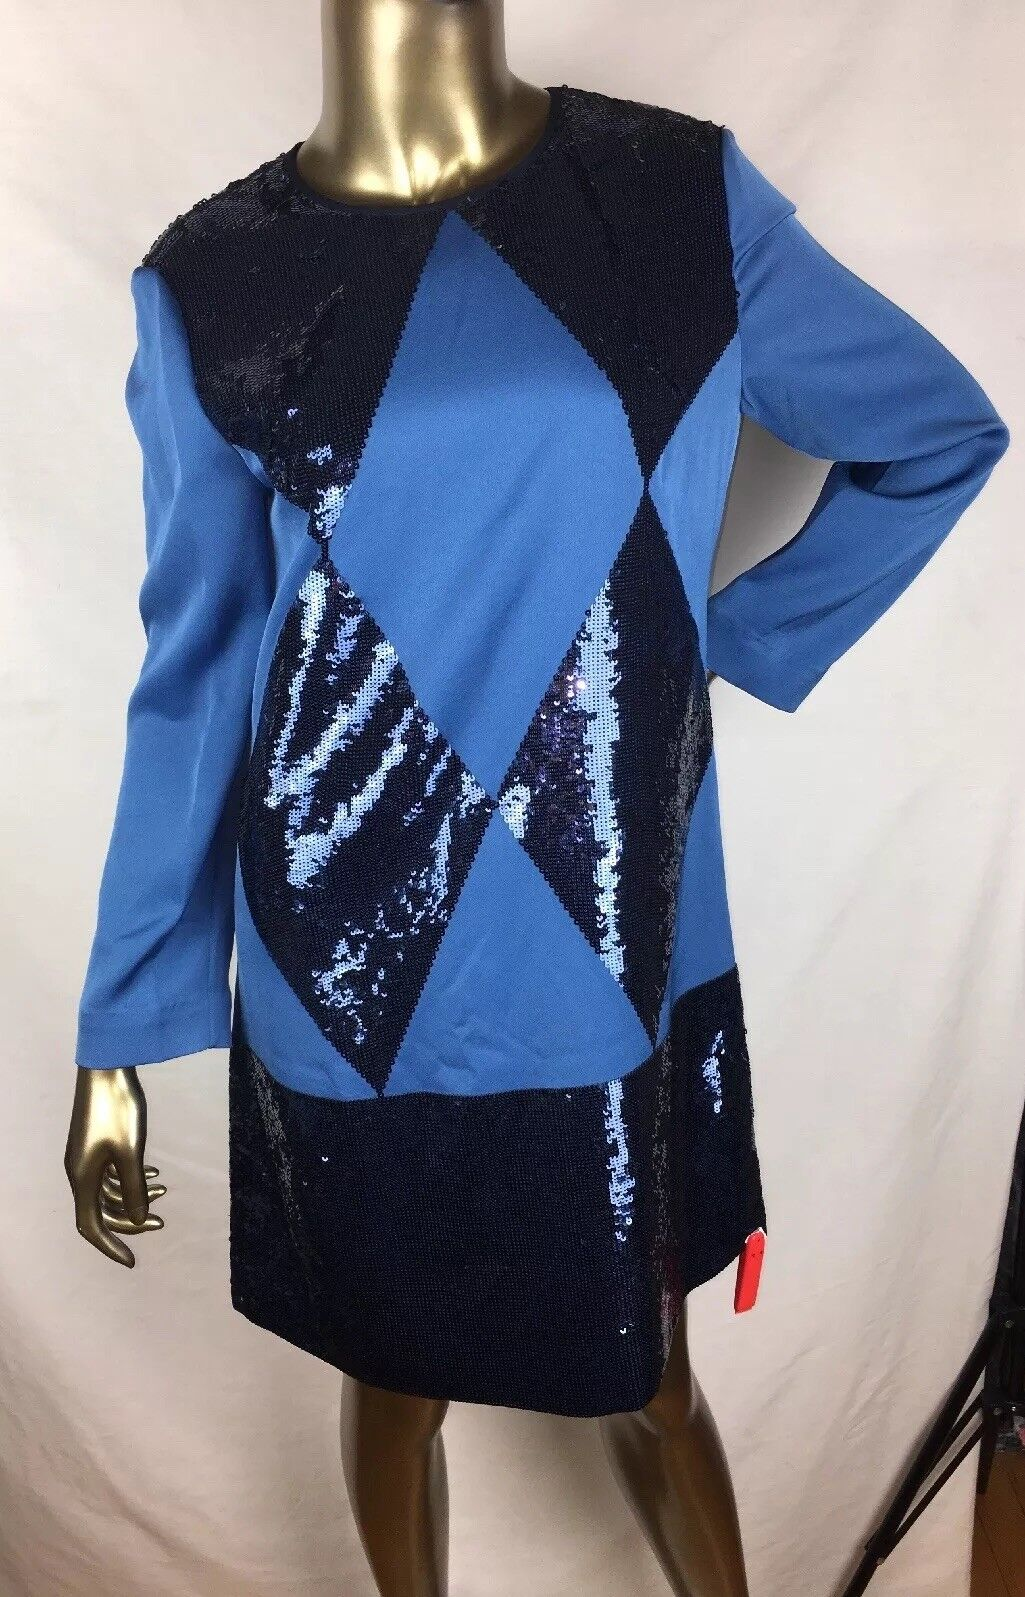 795 795 795  NEW With Tags Tory Burch Lantilly RUNWAY sequin bluee Mini Dress size 8 e4d240